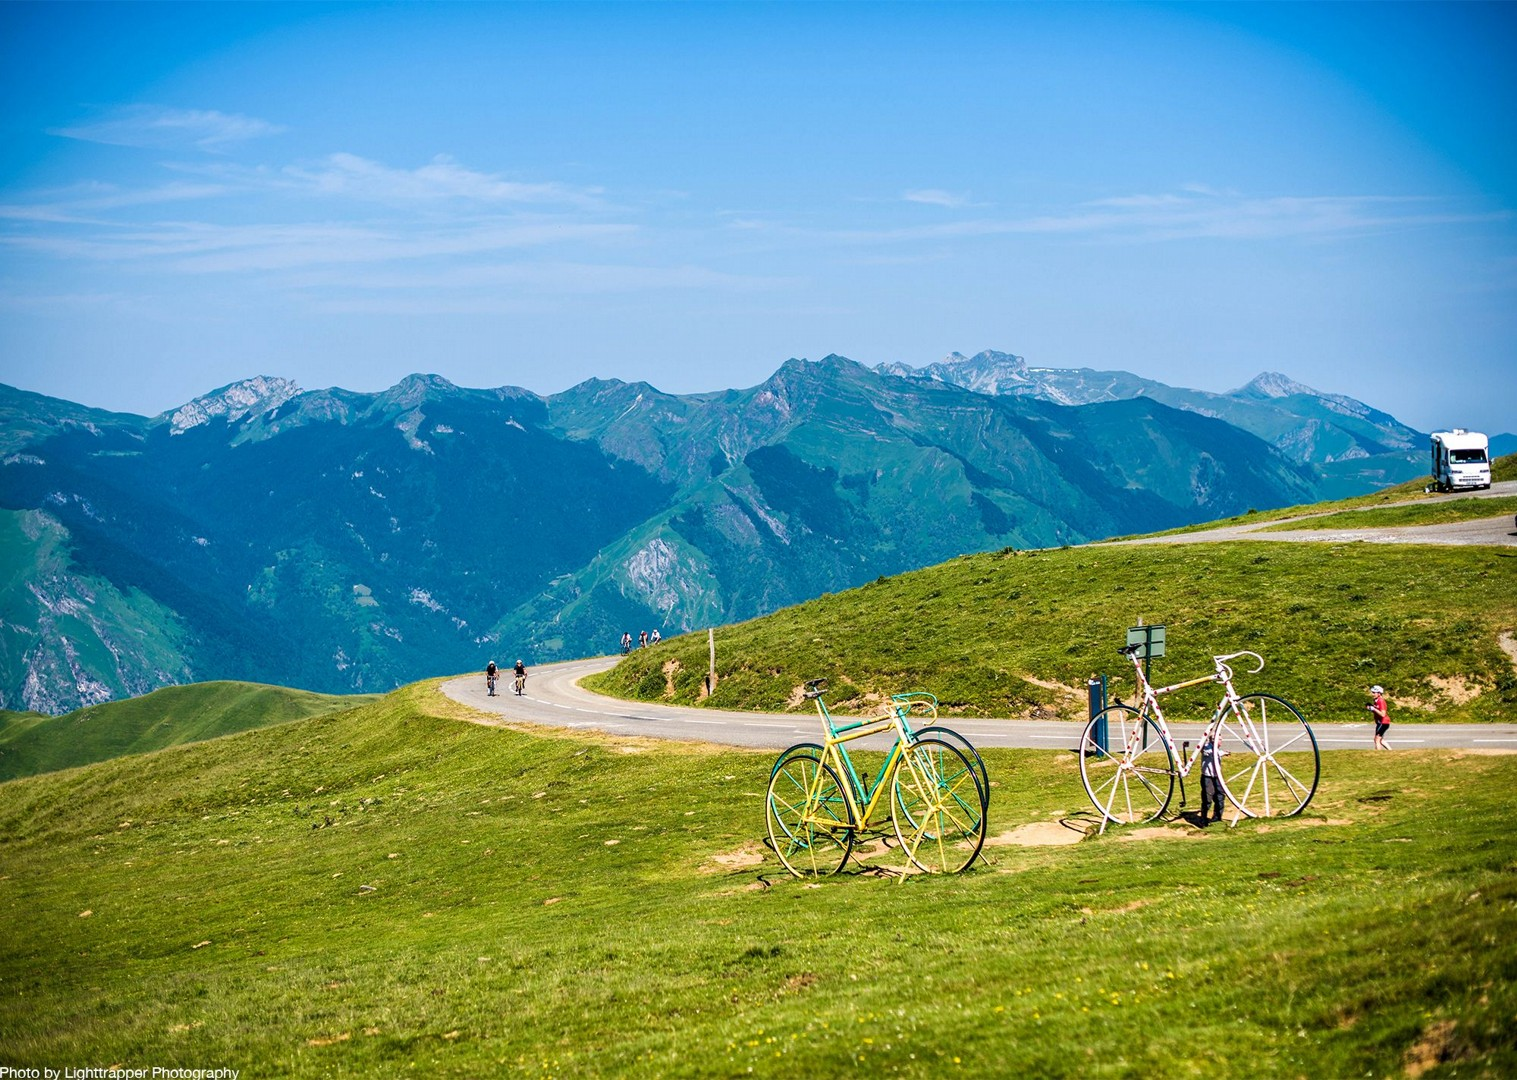 road-cycling-holiday-pyrenees-trip-challenge.jpg - France - Trans Pyrenees Challenge - Guided Road Cycling Holiday - Road Cycling